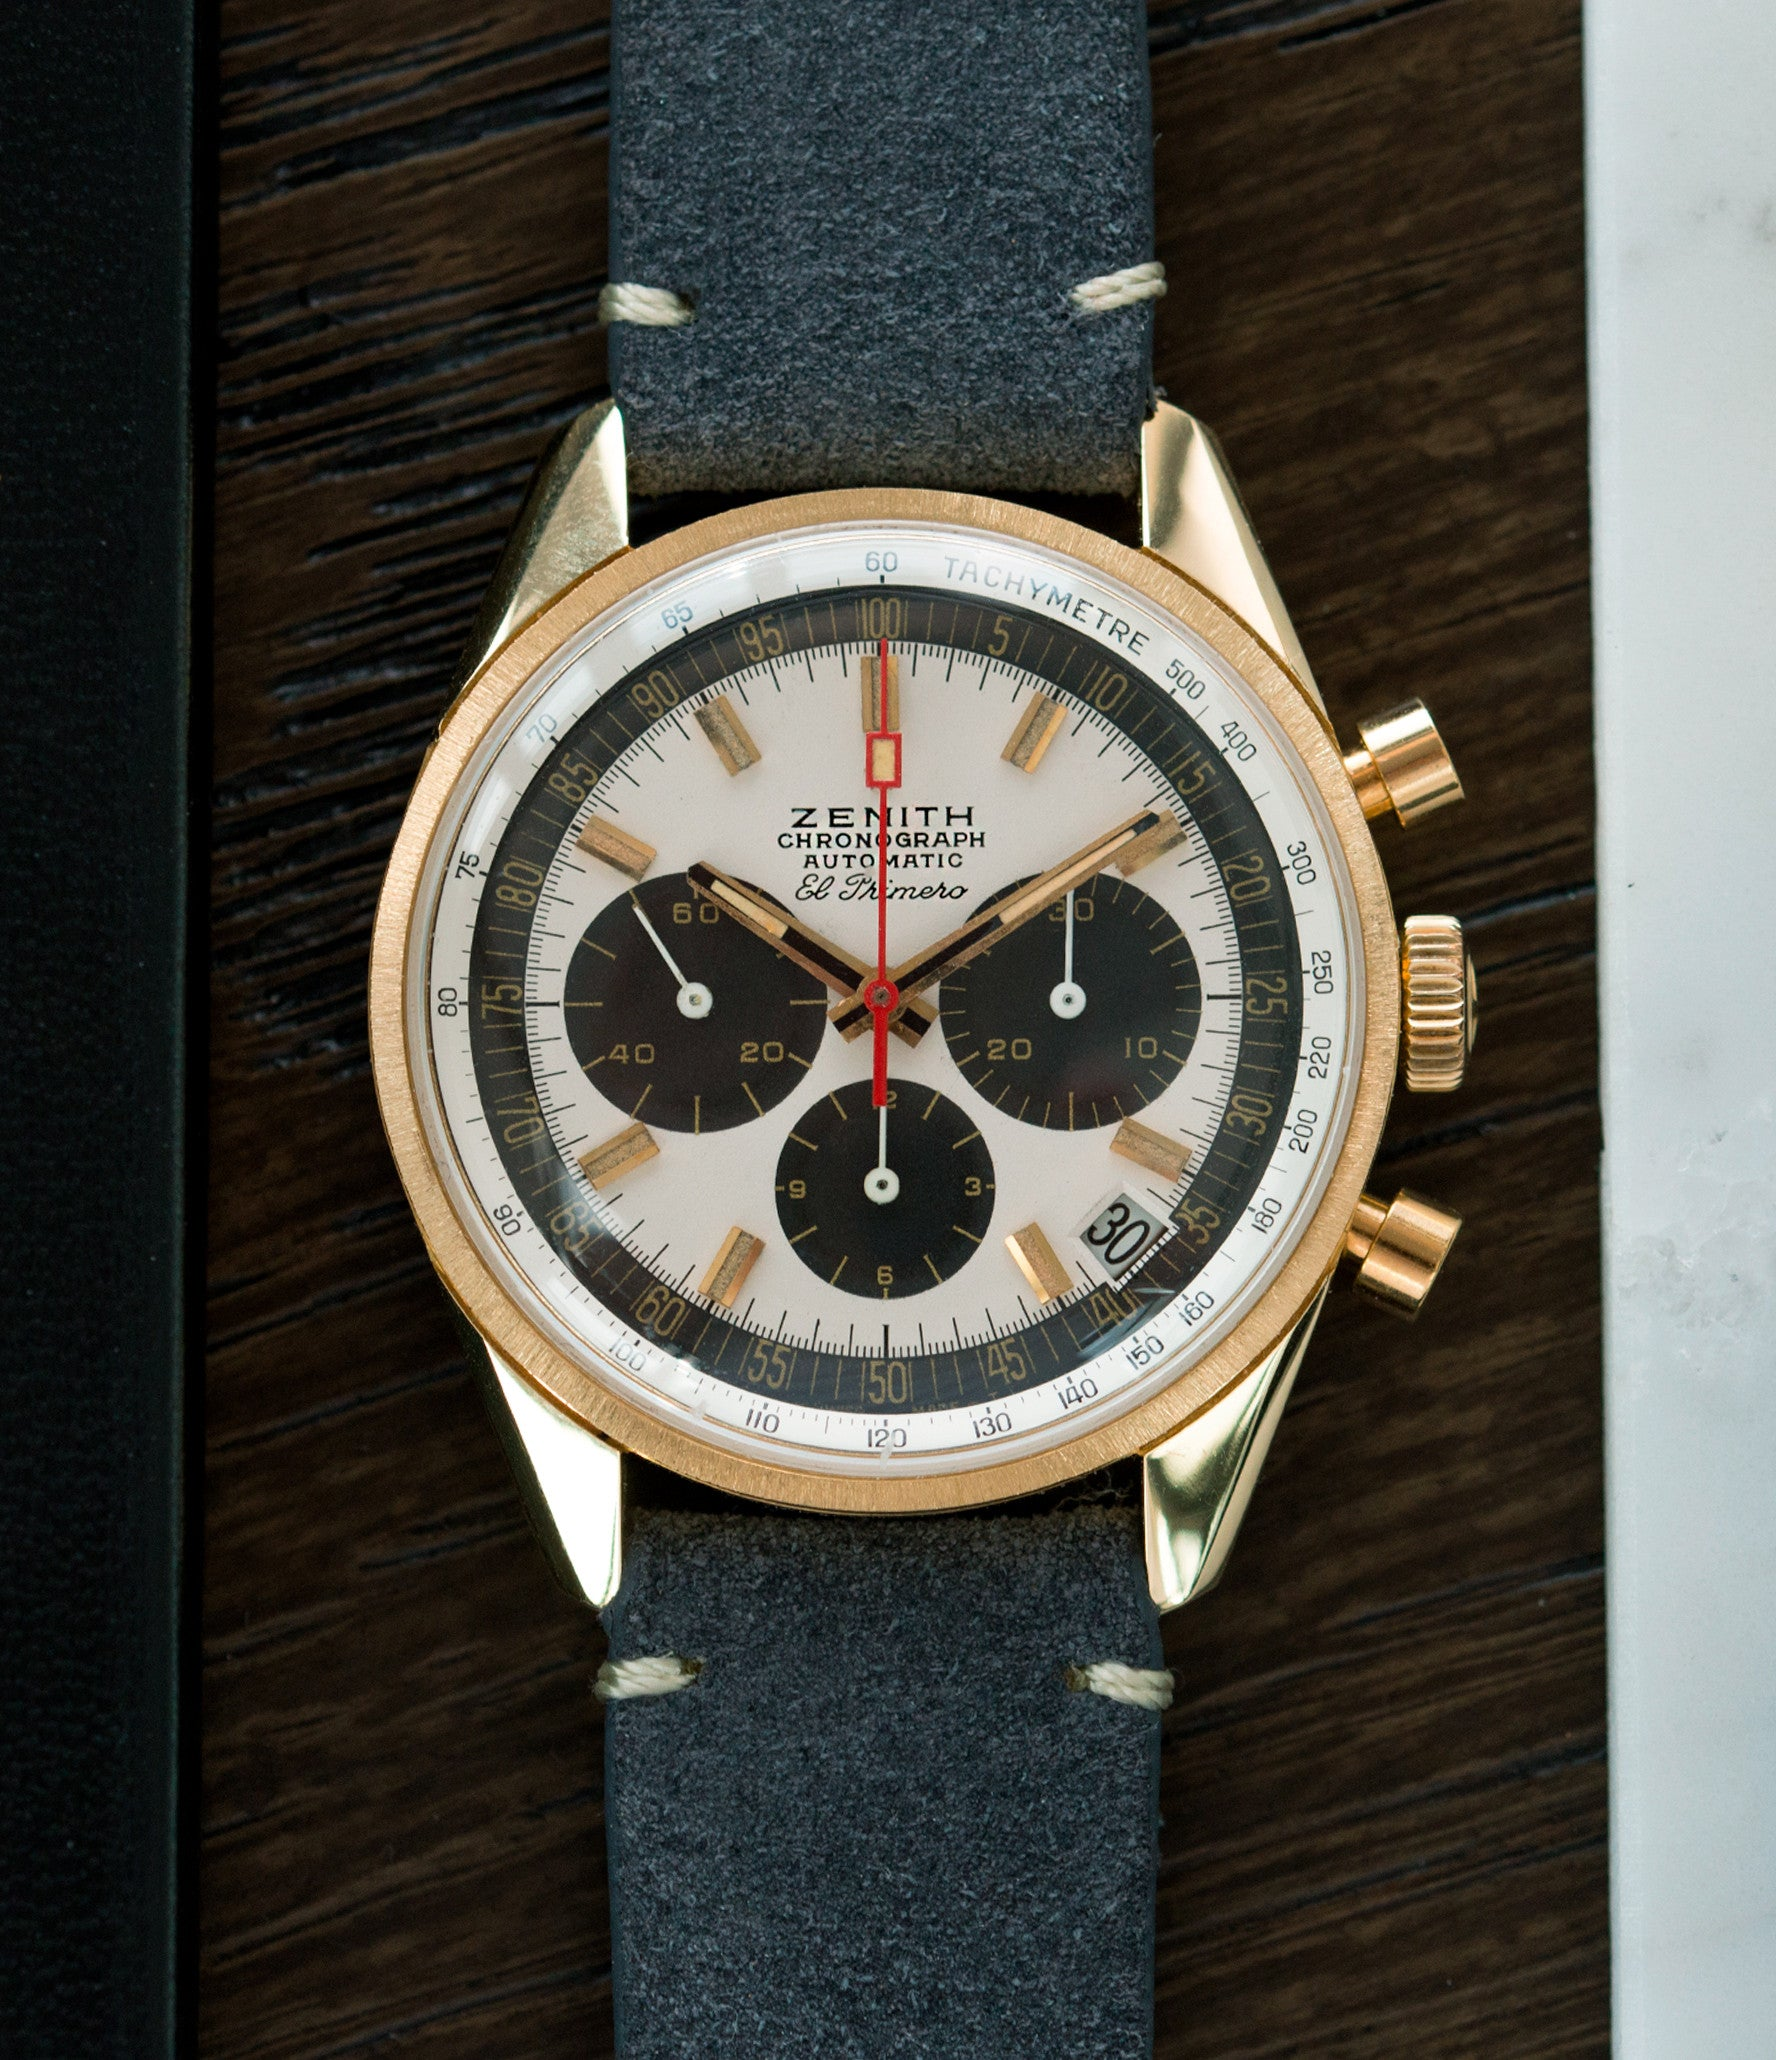 Zenith El Primero G381 rare yellow gold vintage chronograph date watch for sale online at A Collected Man London vintage watch specialist